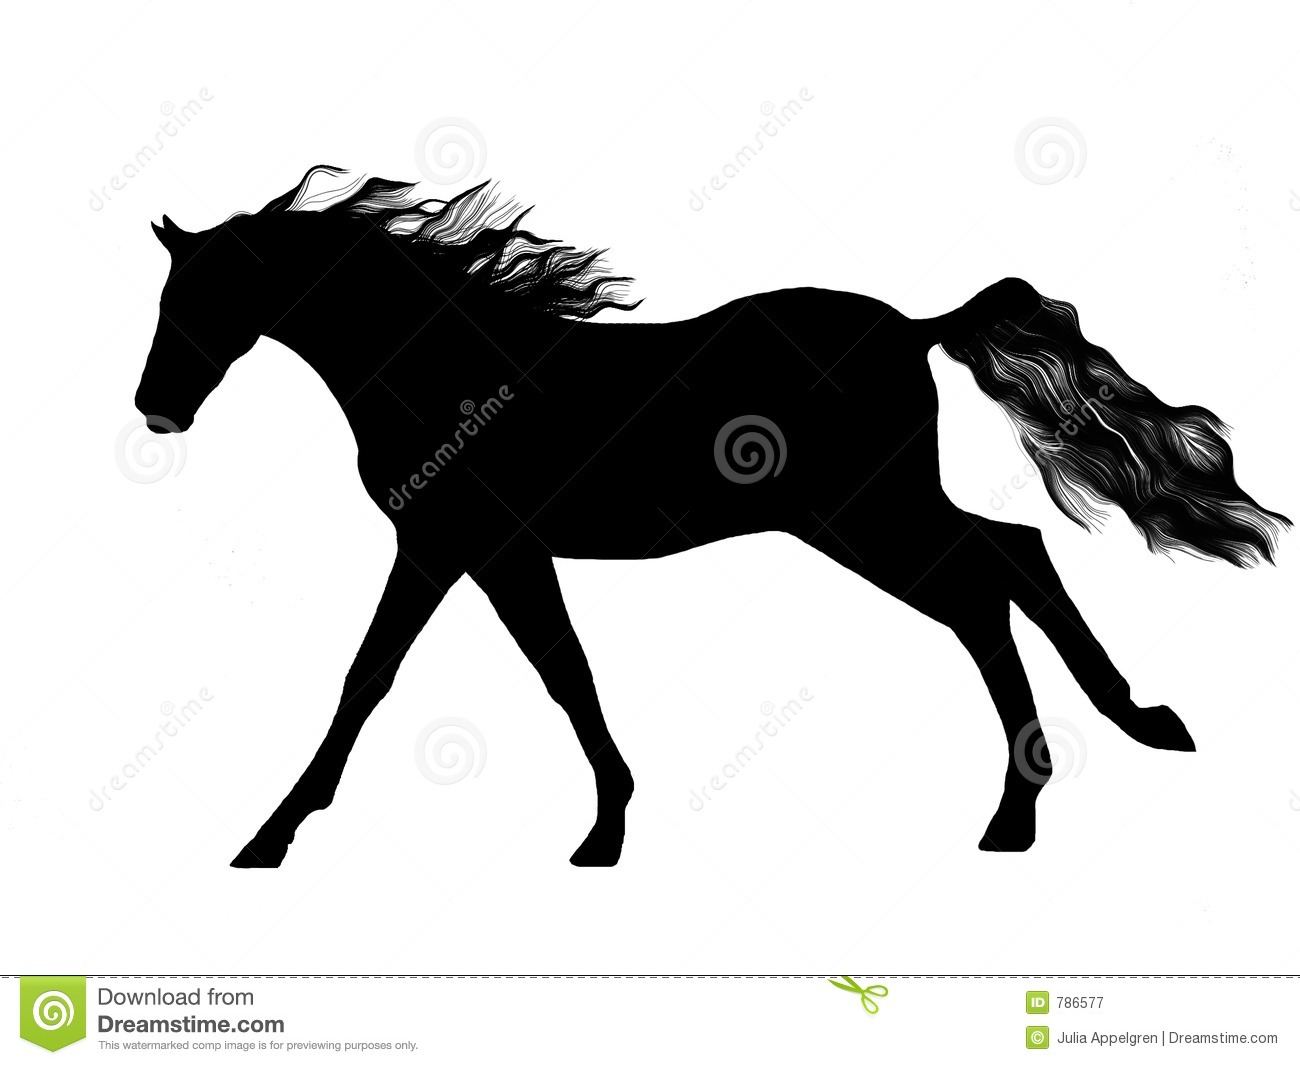 Horse Running Silhouette Stock Illustrations 4 556 Horse Running Silhouette Stock Illustrations Vectors Clipart Dreamstime